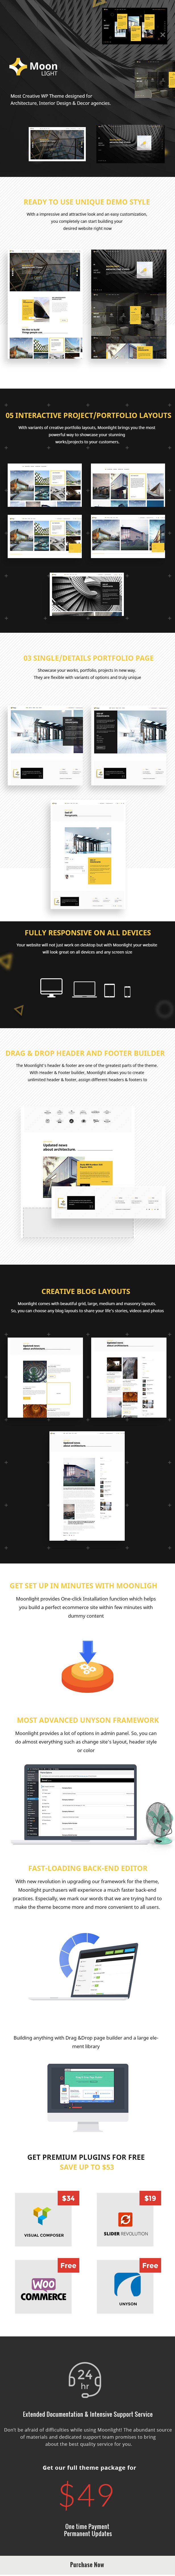 Moonlight WordPress theme